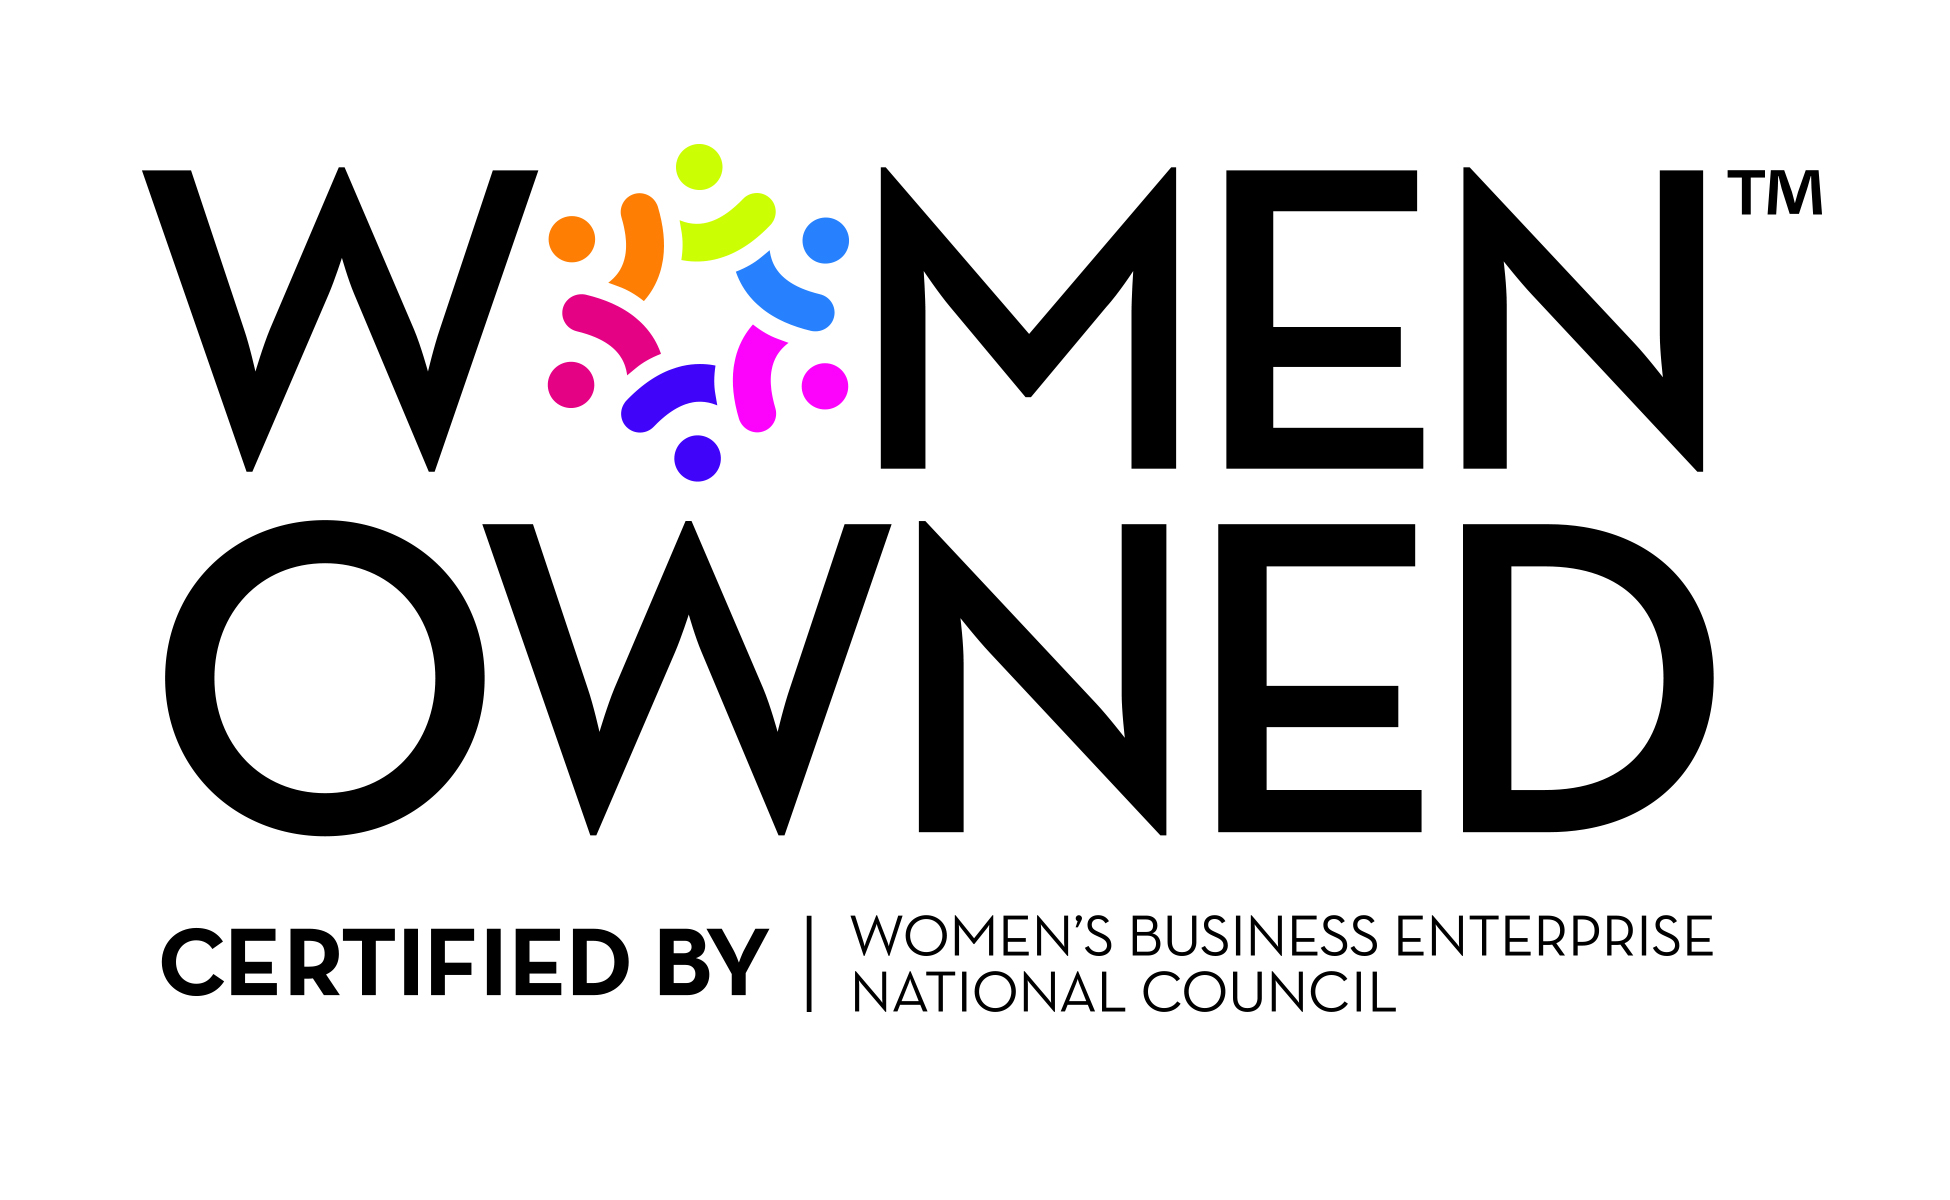 Women Owned Business Certificate